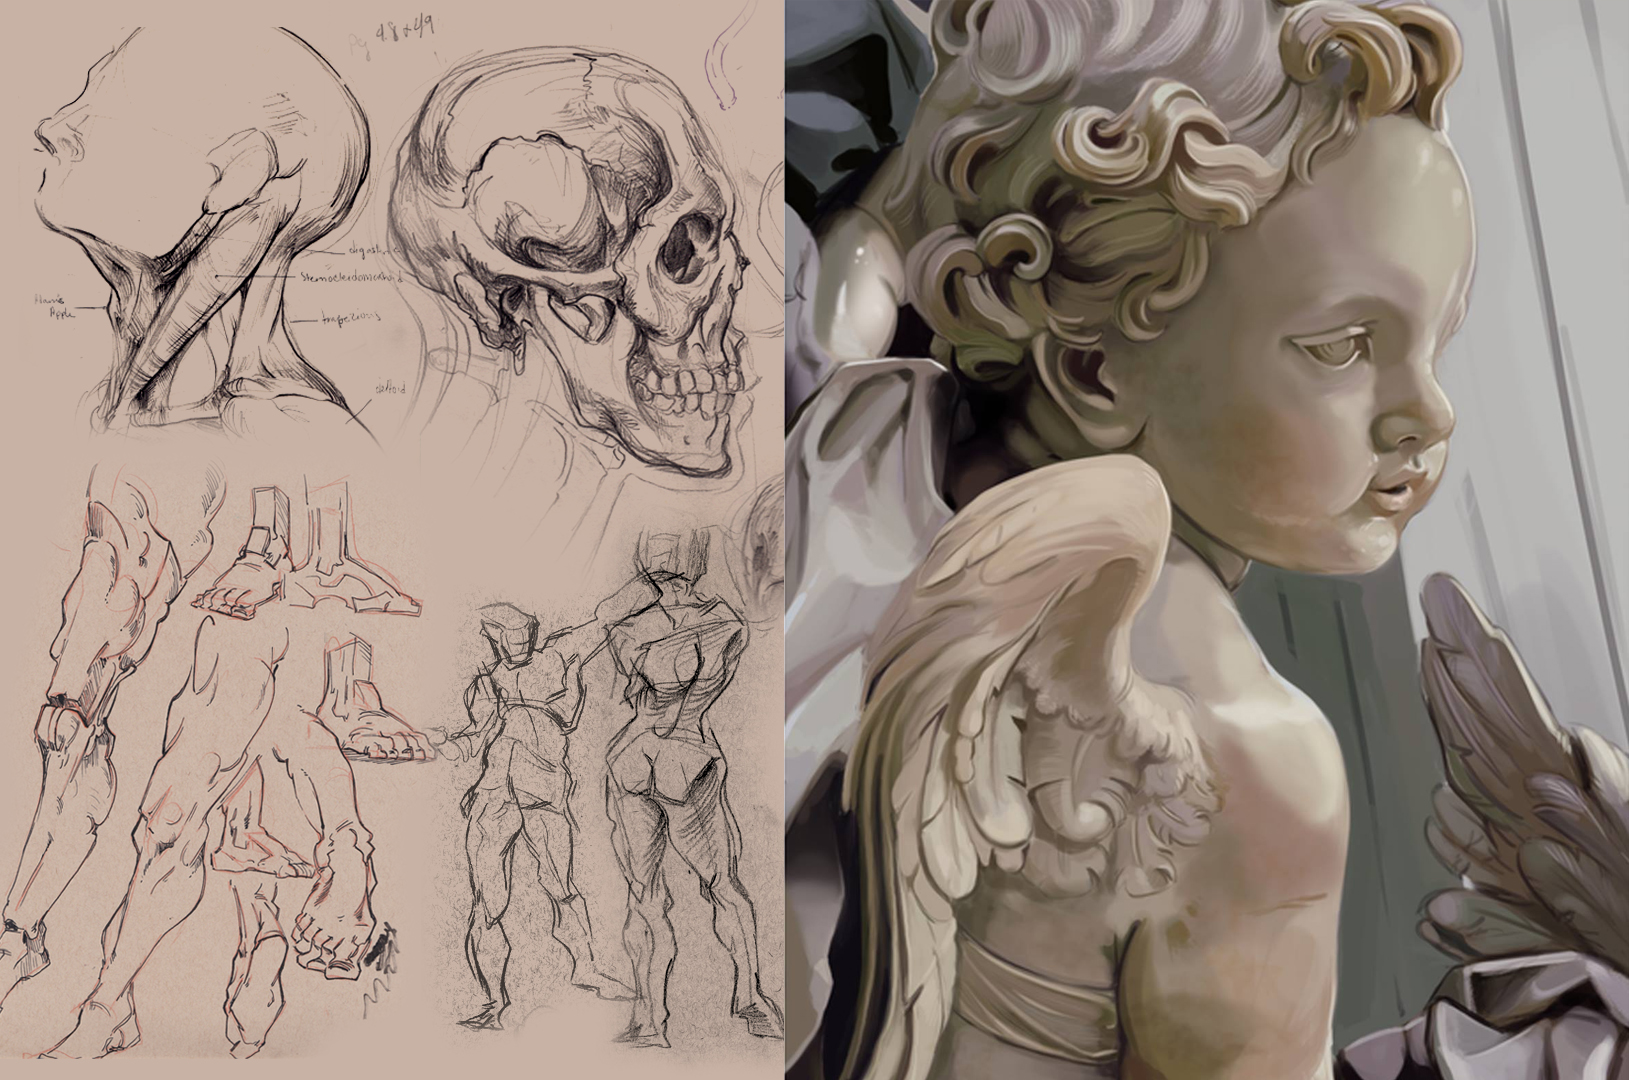 Anatomy sketches and a painted studio of a cherub photo.